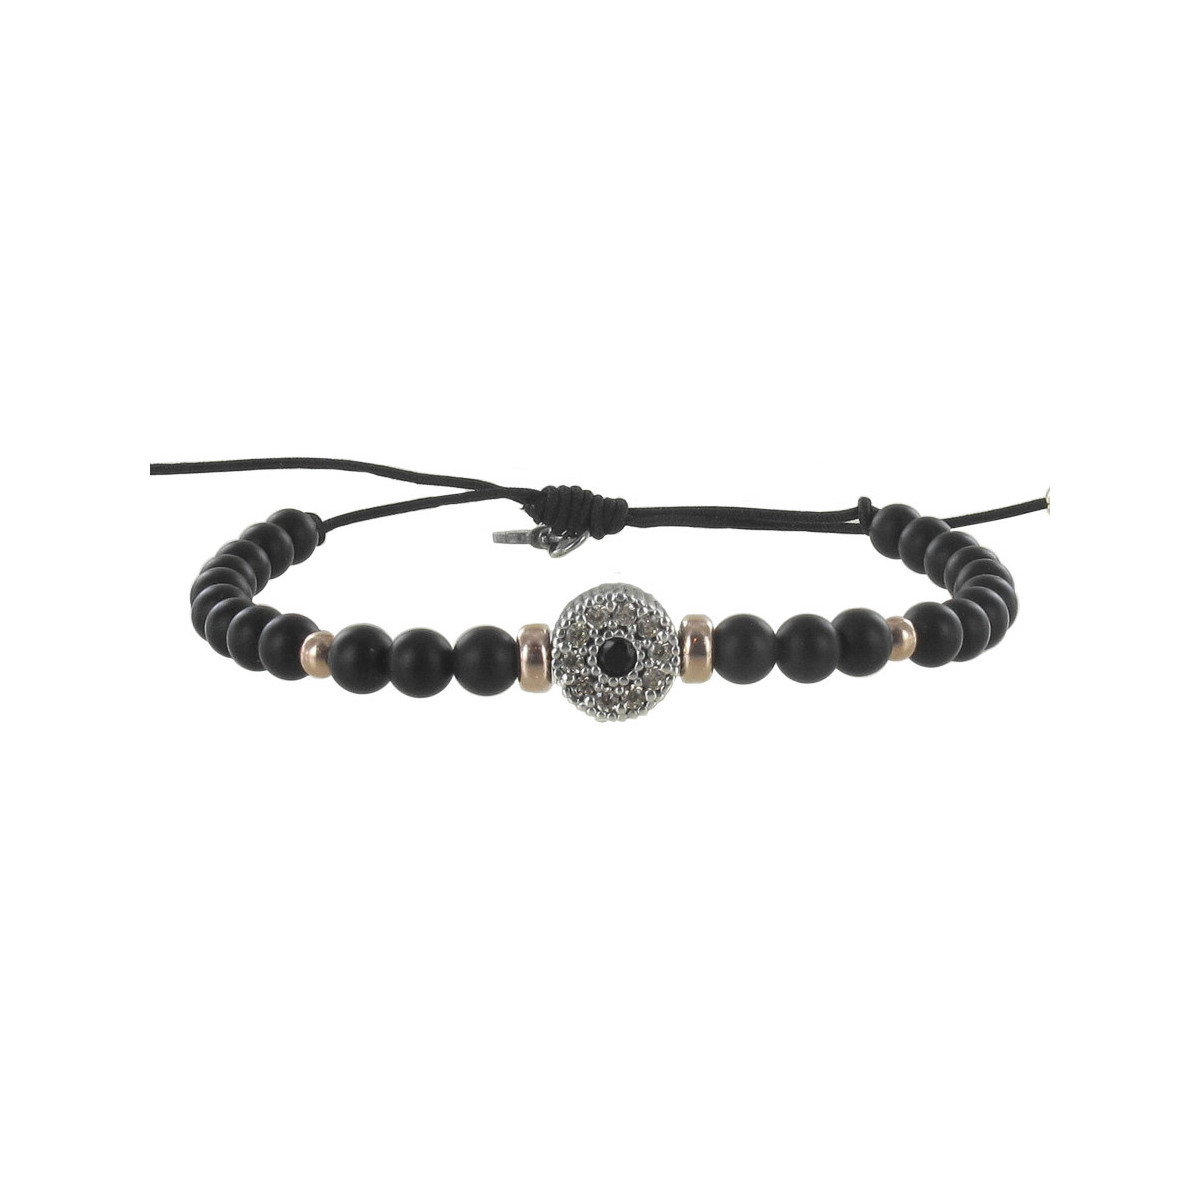 SILVER BRACELET WITH BLACK BALLS AND STONES